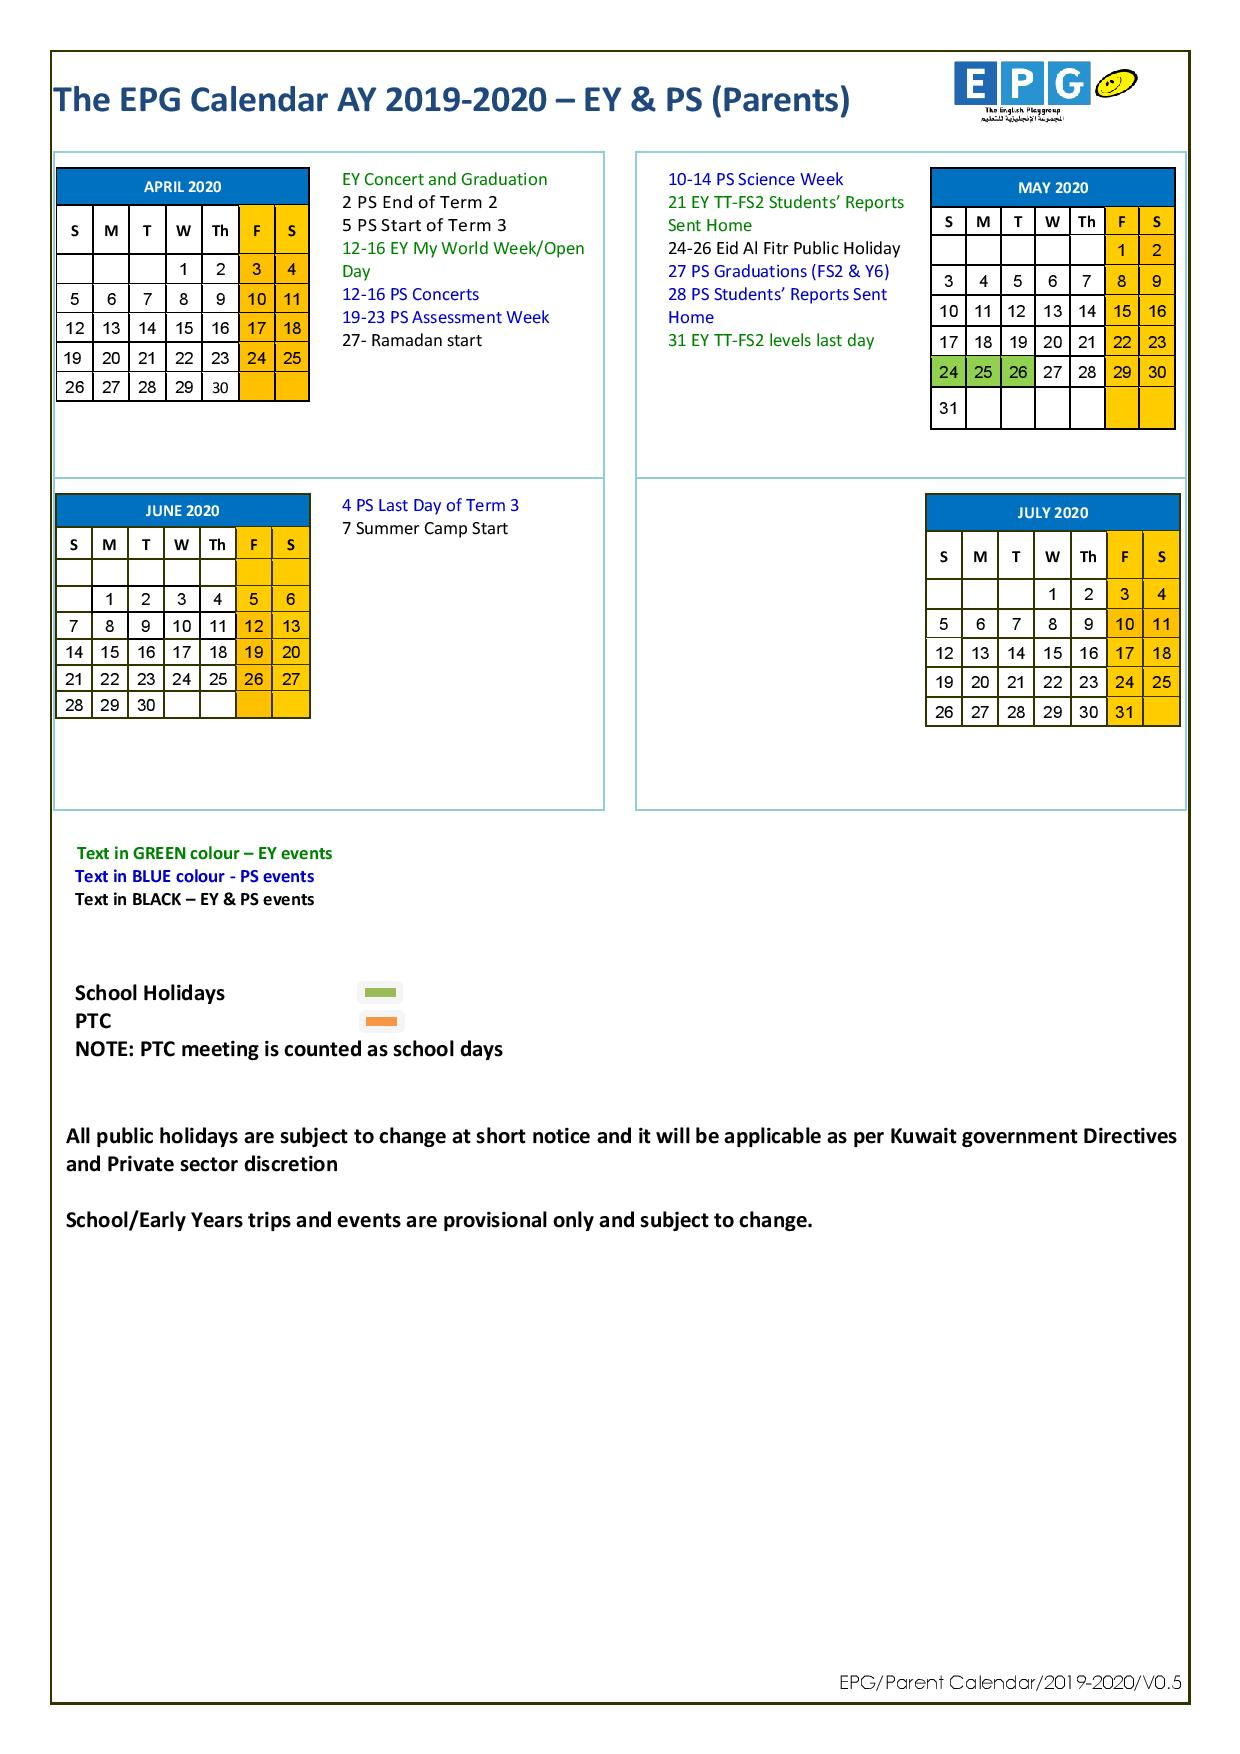 Epg-School-Calendar-Ay-2019-2020-V0.5-Parents-Page-002 - Epg intended for Kuwait 2020 Calendar